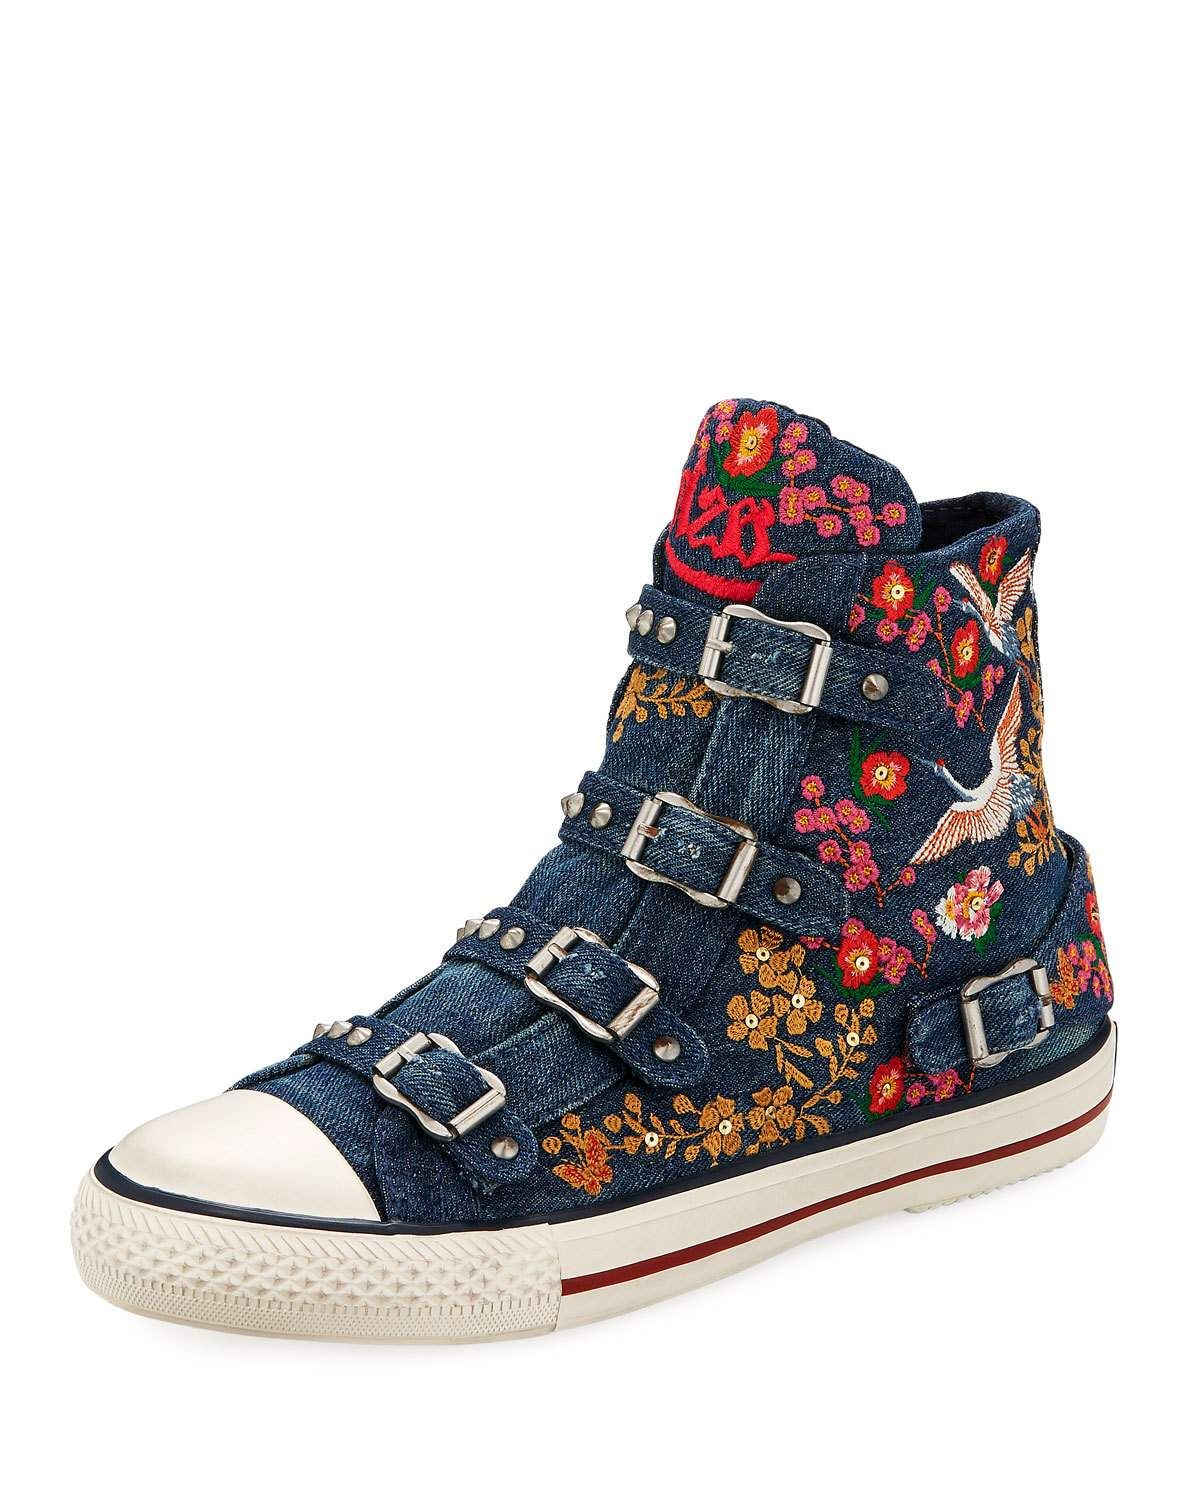 058c999b8118 Get free shipping on Ash Vivi Multi-Buckle Embroidered Denim High-Top Sneaker  at Neiman Marcus. Shop the latest luxury fashions from top designers.